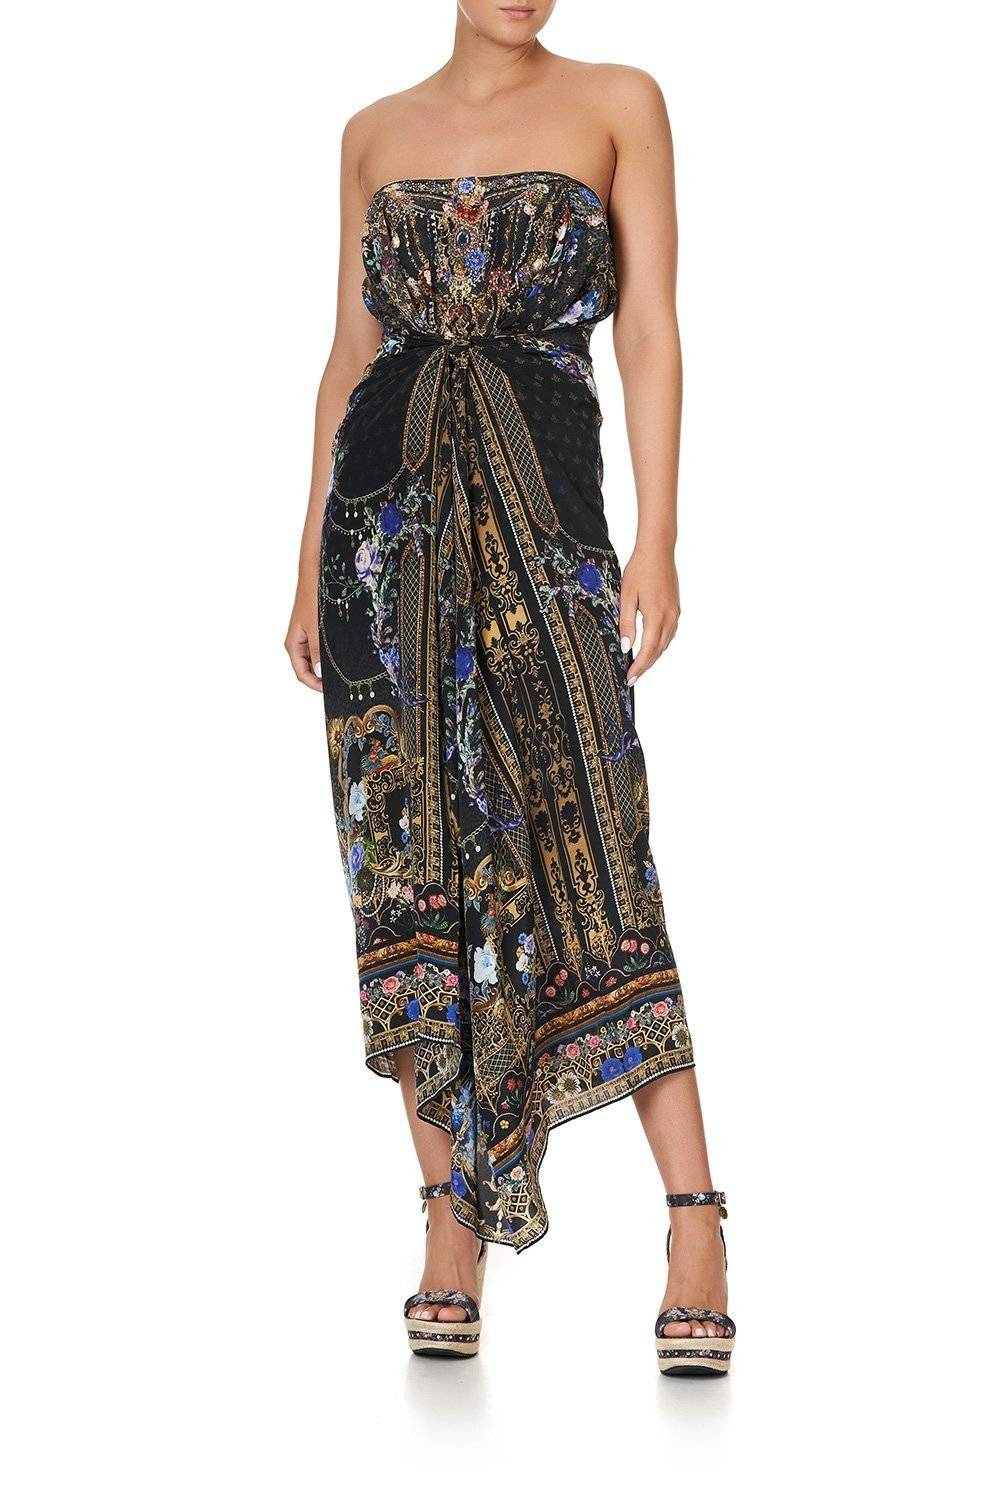 CAMILLA black round neck kaftan with blue flowers